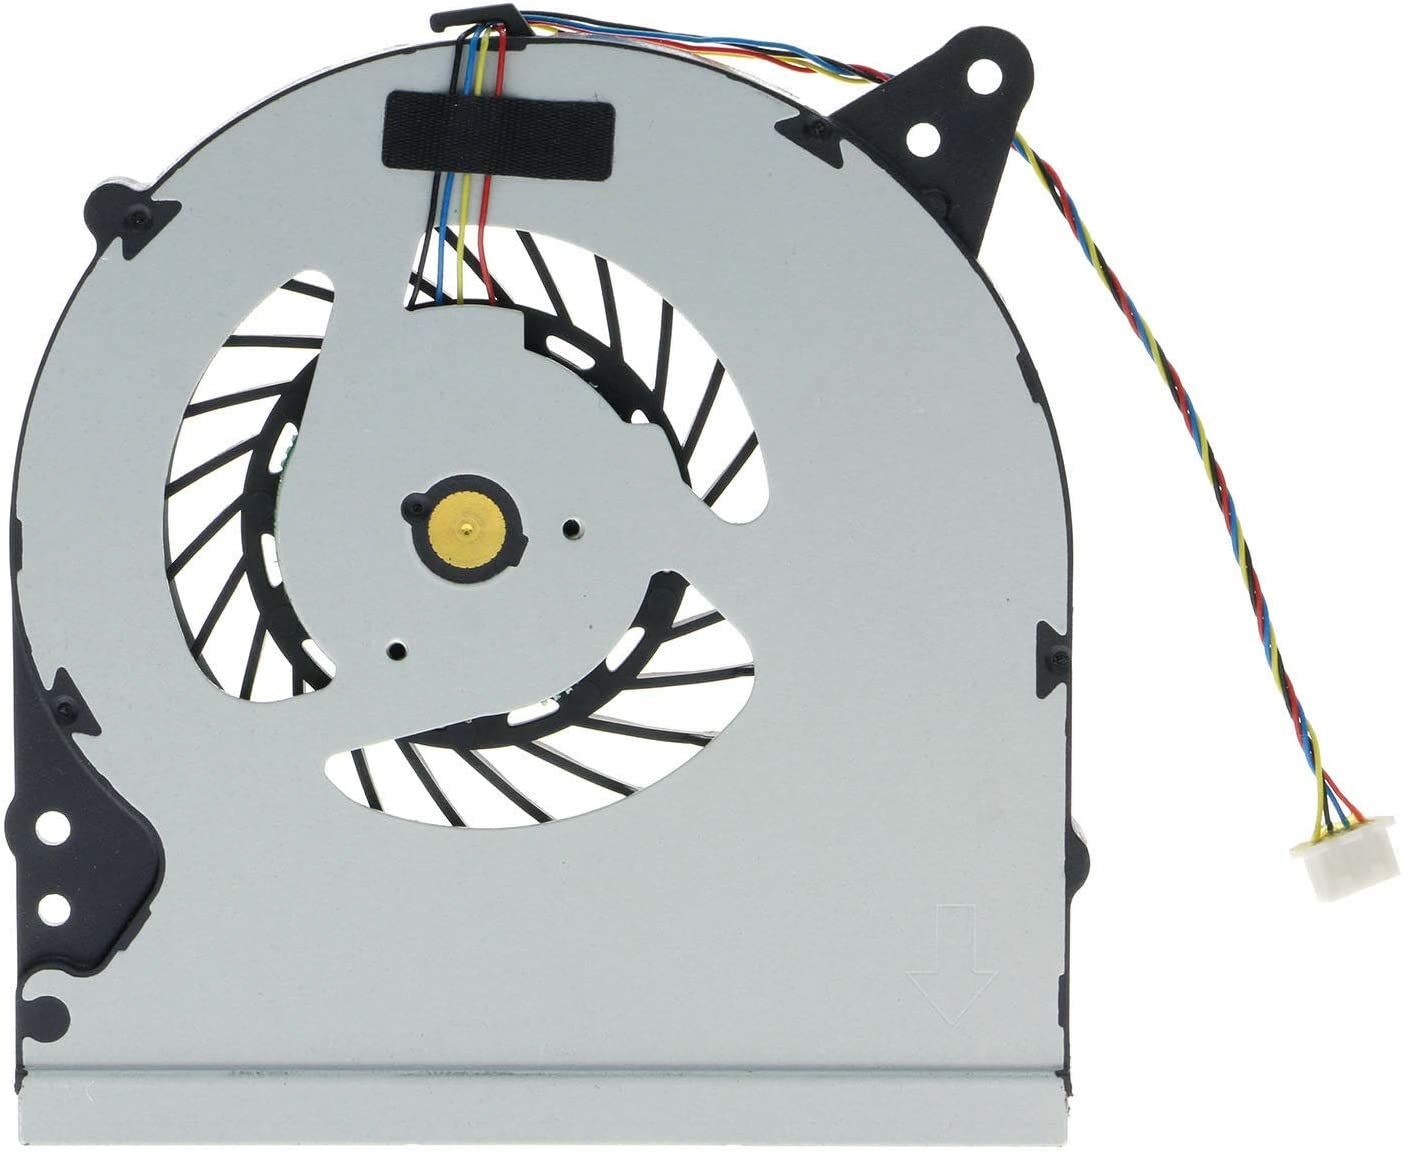 CAQL CPU Cooling Fan Max 40% OFF for Dell XPS P 1820 N: Laptop 18 ...